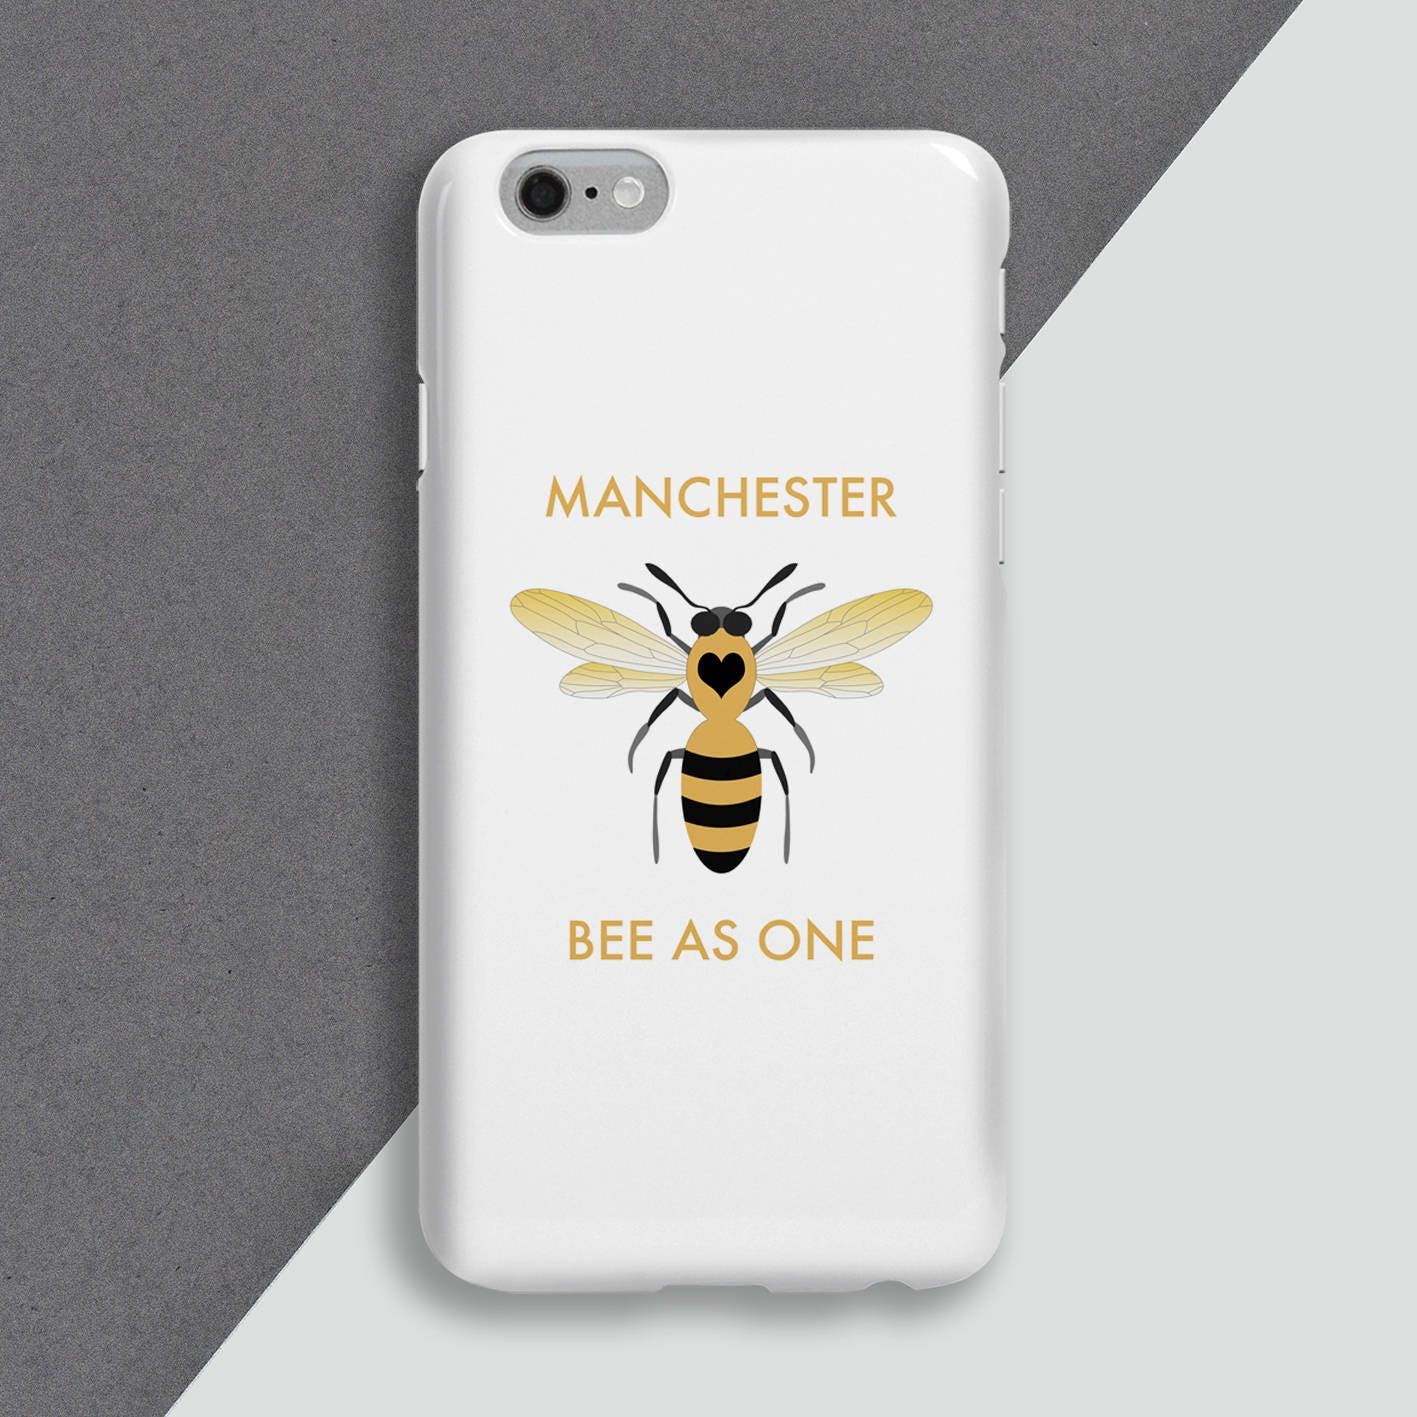 Bee phone cover  personalised phone case Manchester Bees phone skin  personalised cell case  iphone  Charity Phone Cover  Manchester